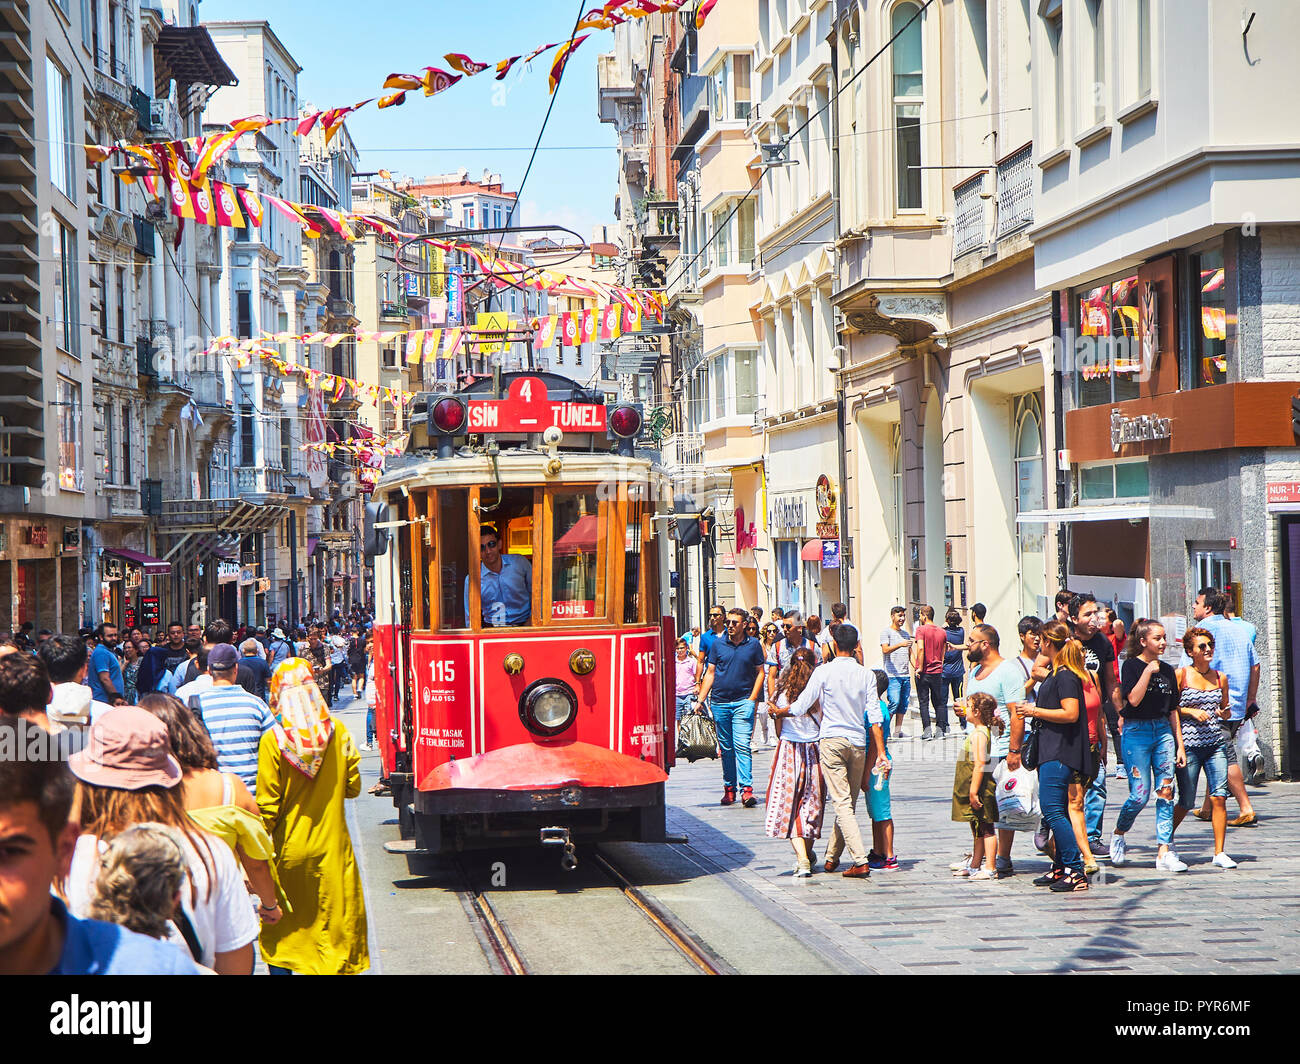 A tram crossing the bustling Istiklal street, adorned with pennants of the Galatasaray Sports Club. Beyoglu district, Turkey. - Stock Image